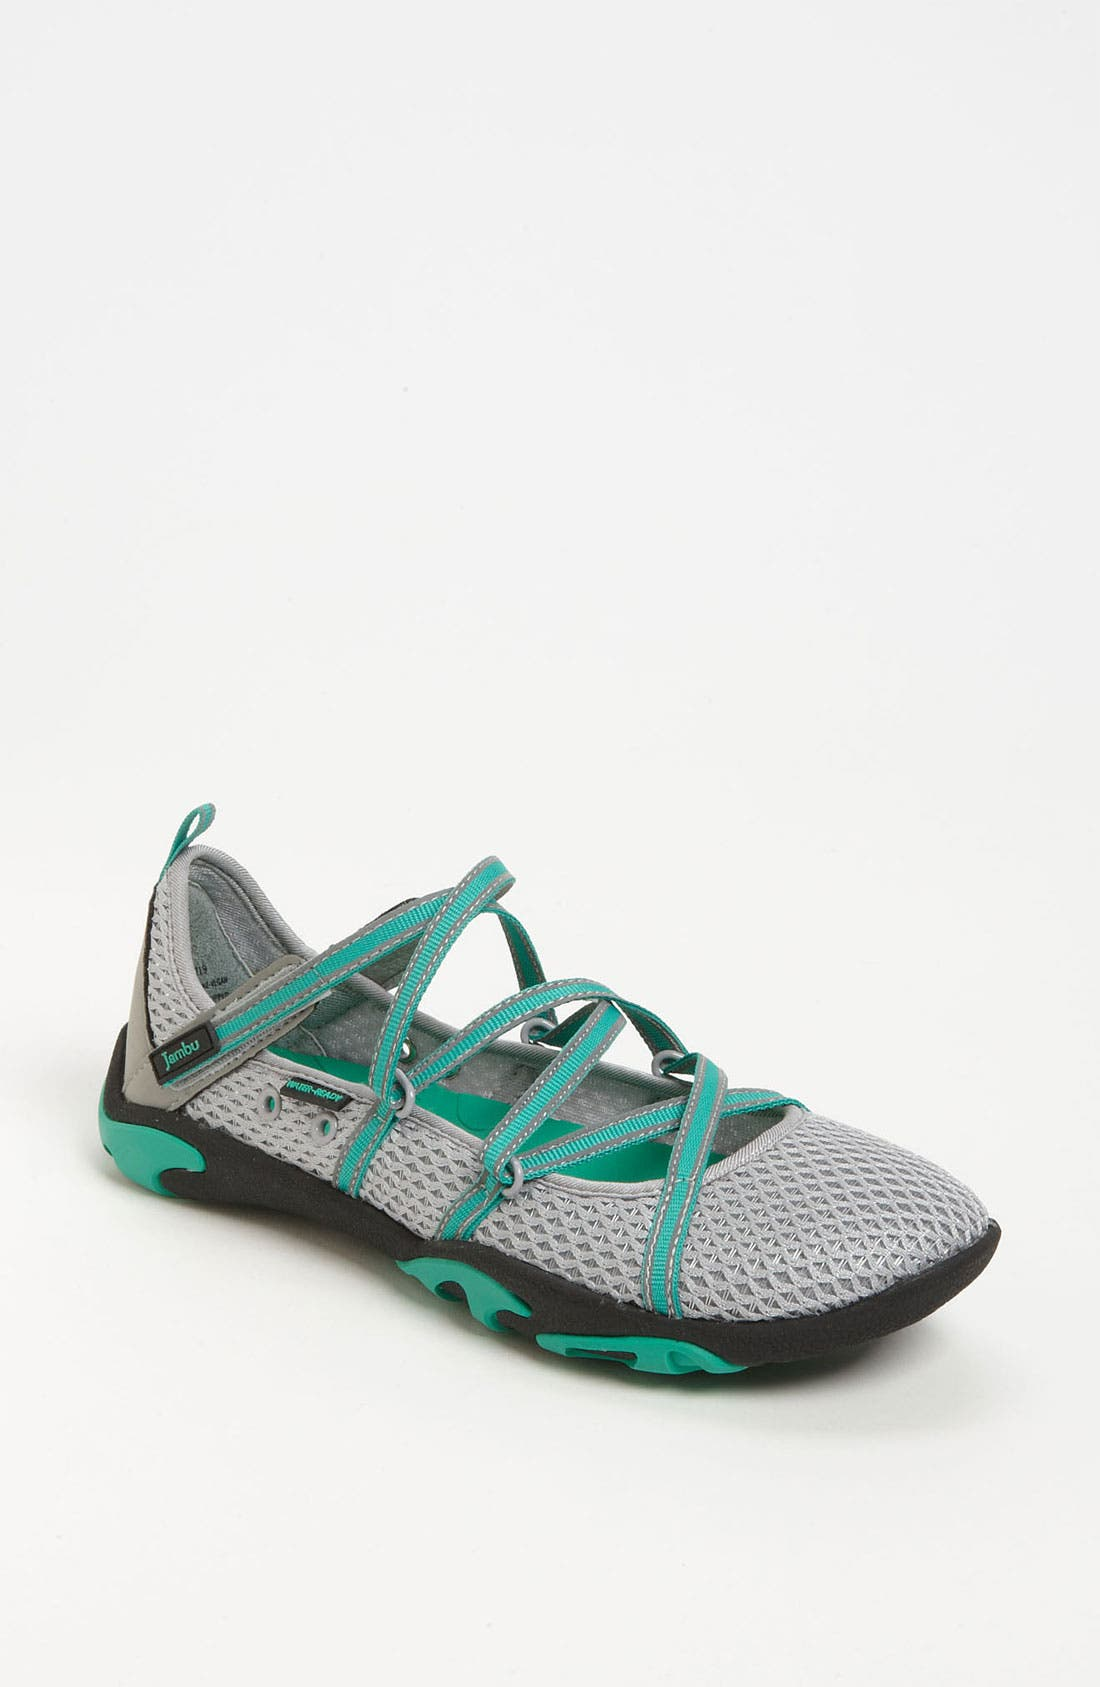 Alternate Image 1 Selected - Jambu 'Terra Marine Tidal' Sandal